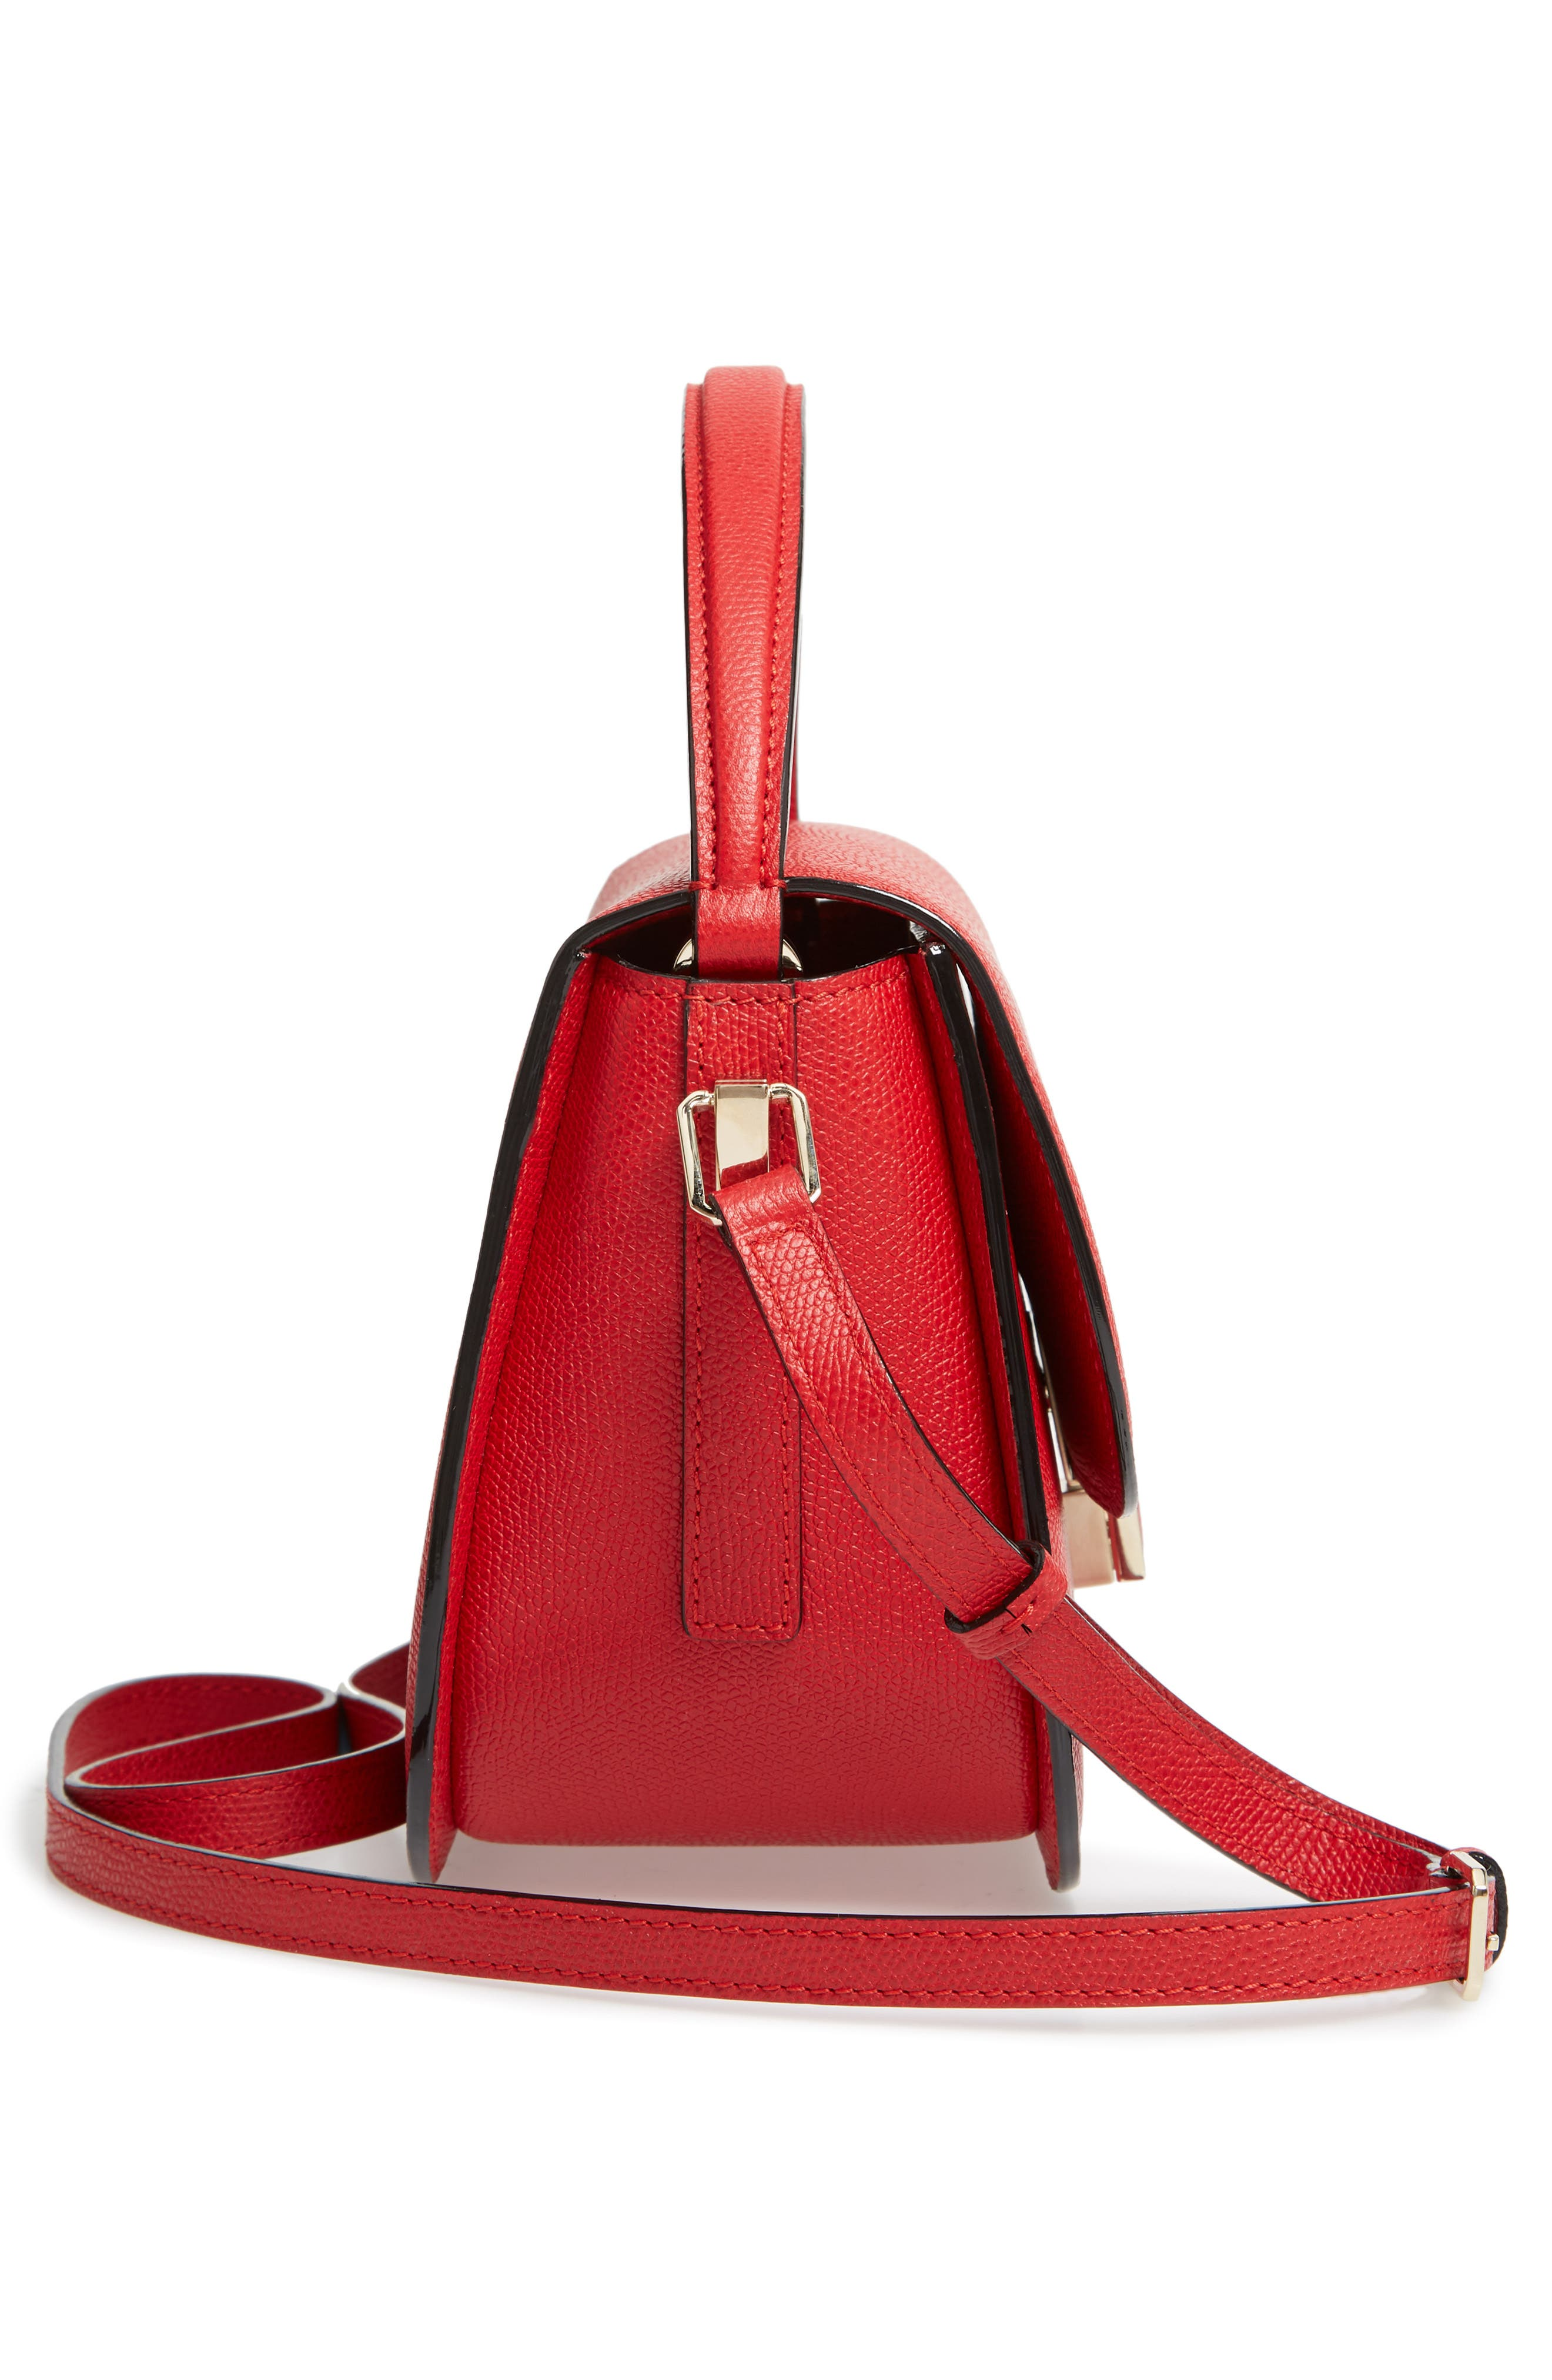 Iside Leather Top Handle Bag,                             Alternate thumbnail 5, color,                             RED